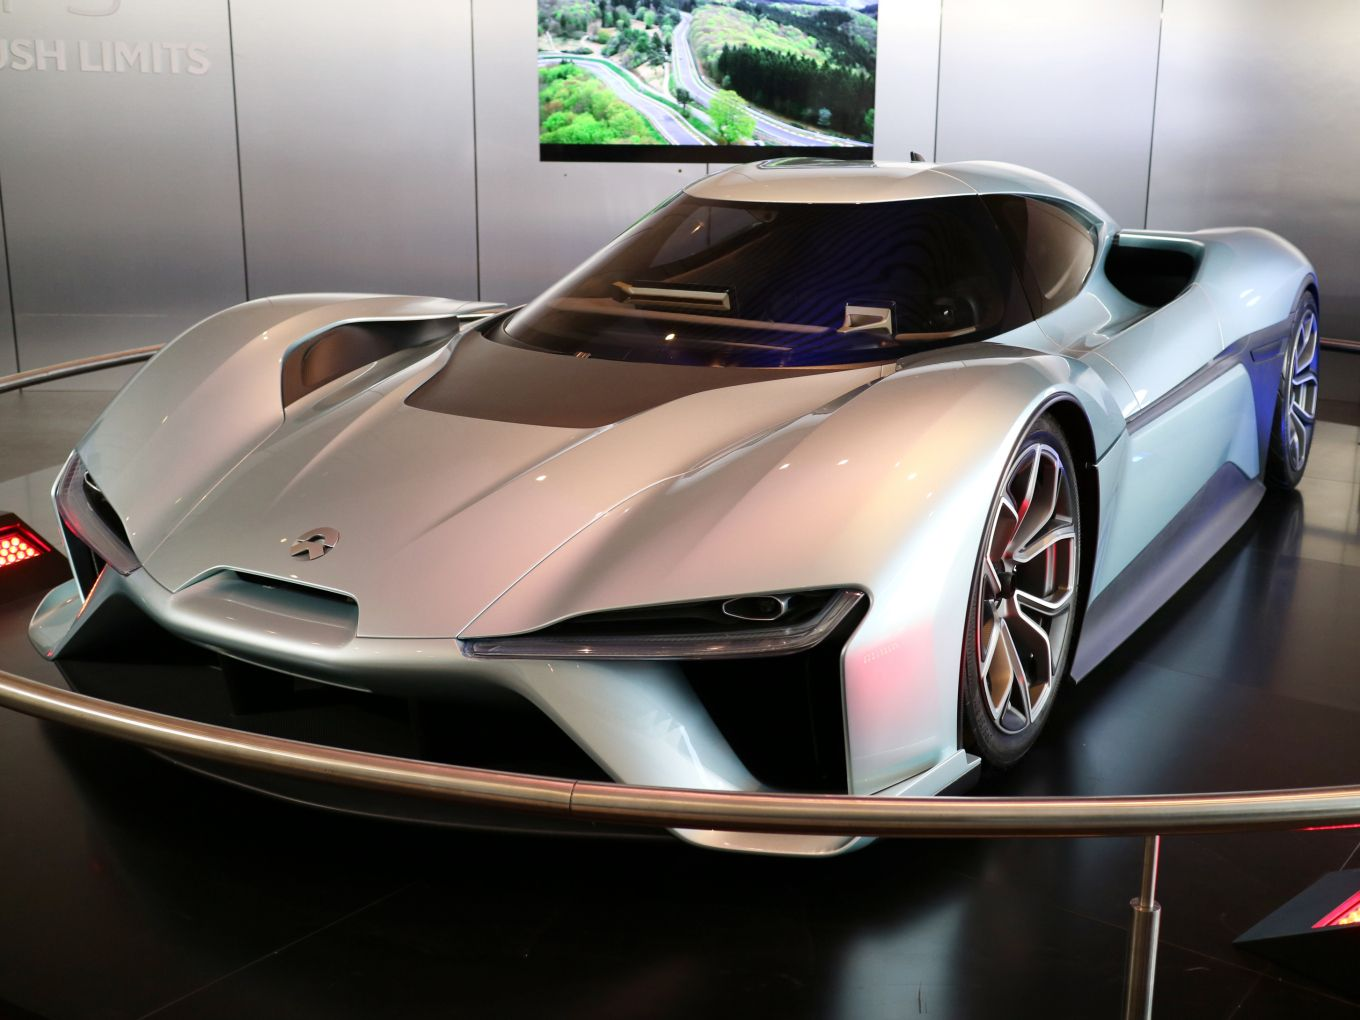 Chinese Electric Vehicle Maker Nio More Concerned With User Experience Than Rival Tesla Techcrunch High Performance Cars Vehicles Tesla